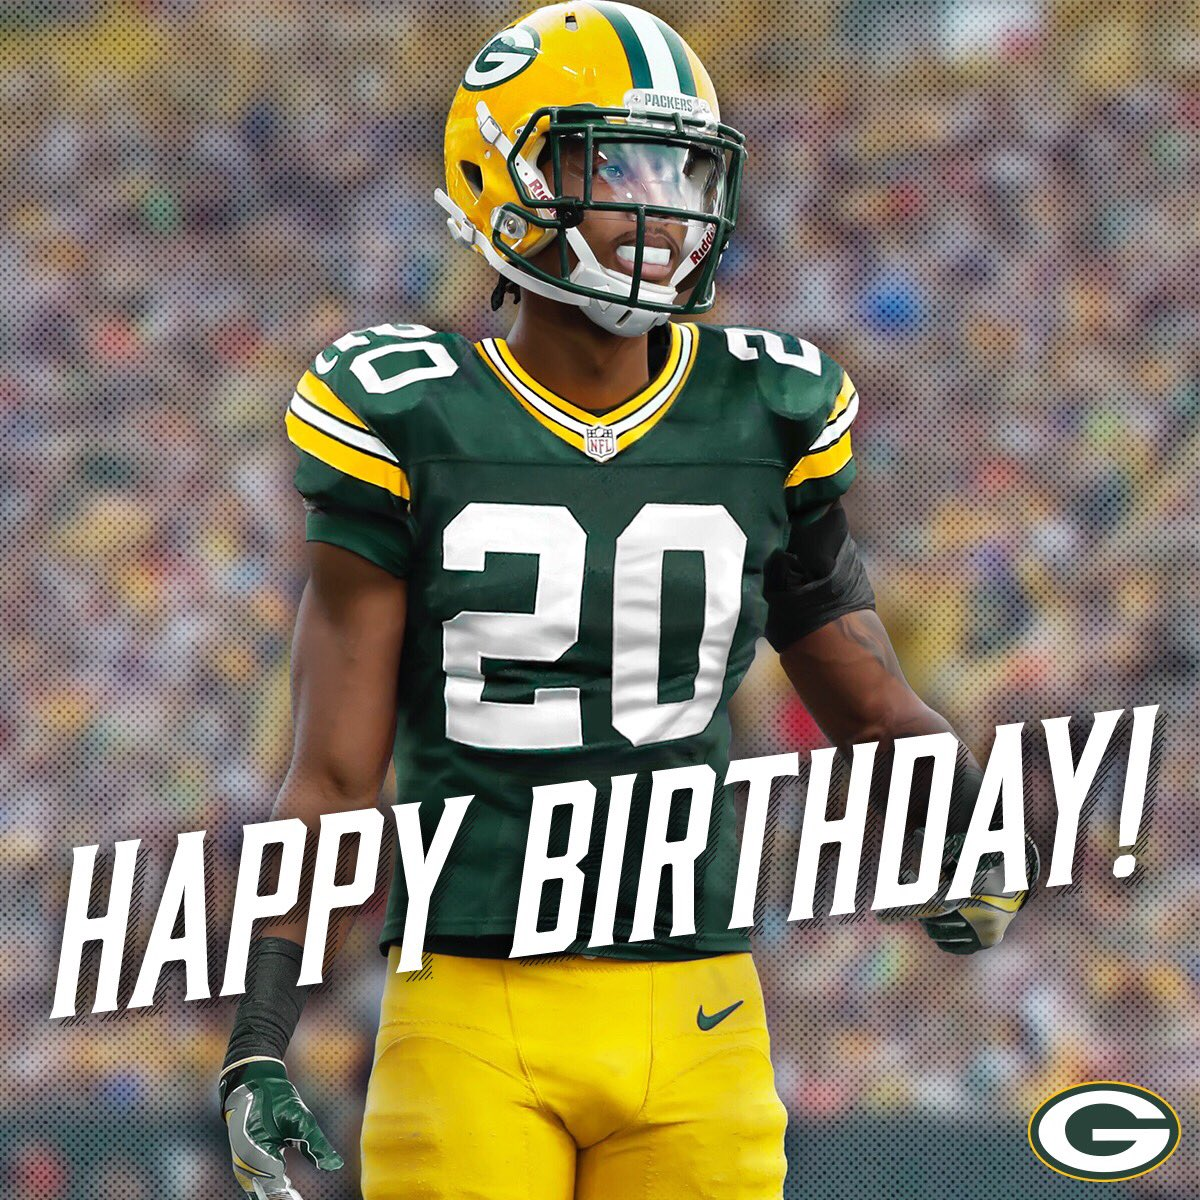 Kevin King: RT To Wish #Packers Rookie CB Kevin King